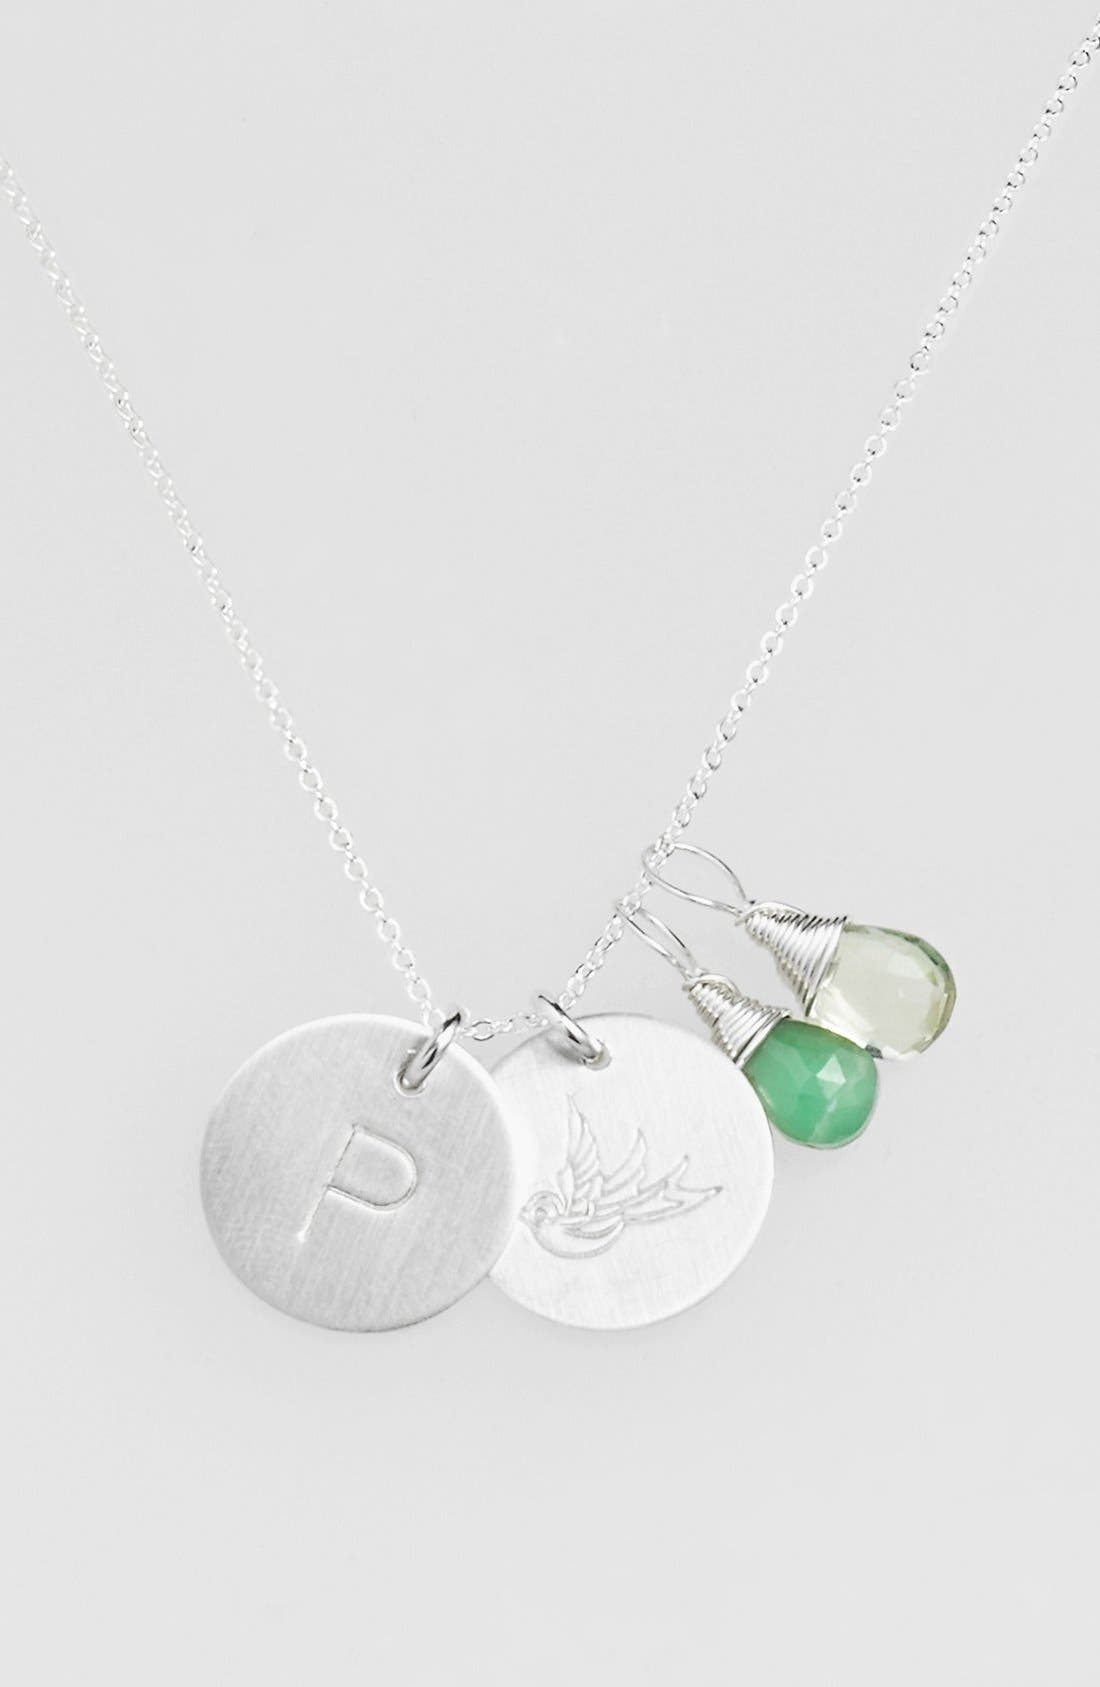 From humble beginnings to a fully staffed warehouse in Bend, Oregon, Nashelle remains true to its original purpose-handmade jewelry crafted with love and intention. Two dainty wire-wrapped gemstones add color and dazzle to a keepsake necklace with additional pendants, including one hand-stamped swallow and one hand-stamped initial. The swallow symbol represents love, loyalty and a safe return home. Style Name: Nashelle Green Amethyst Initial &